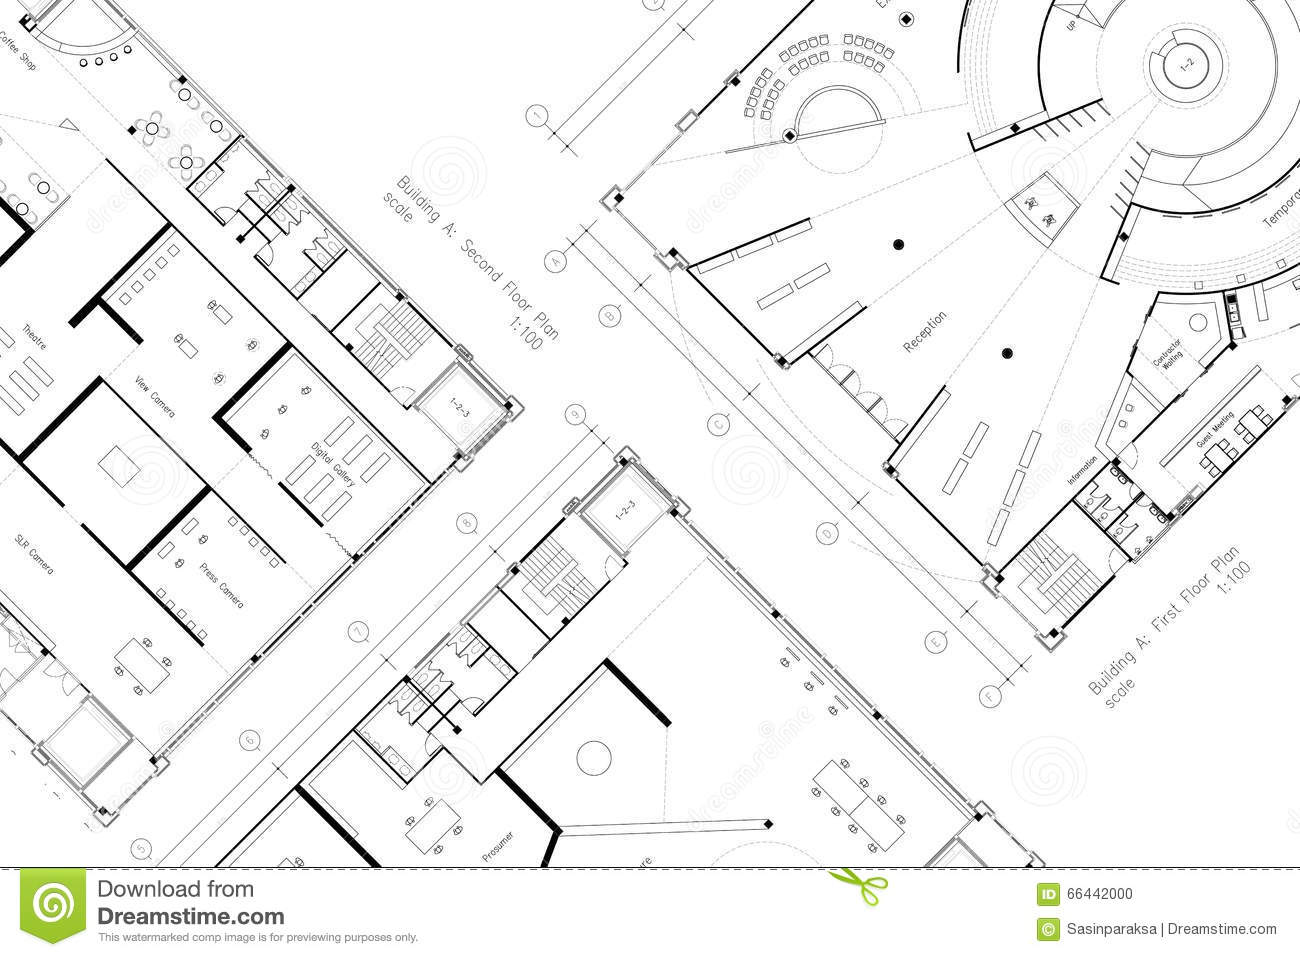 Abstract architecture plans images for Copy architectural plans